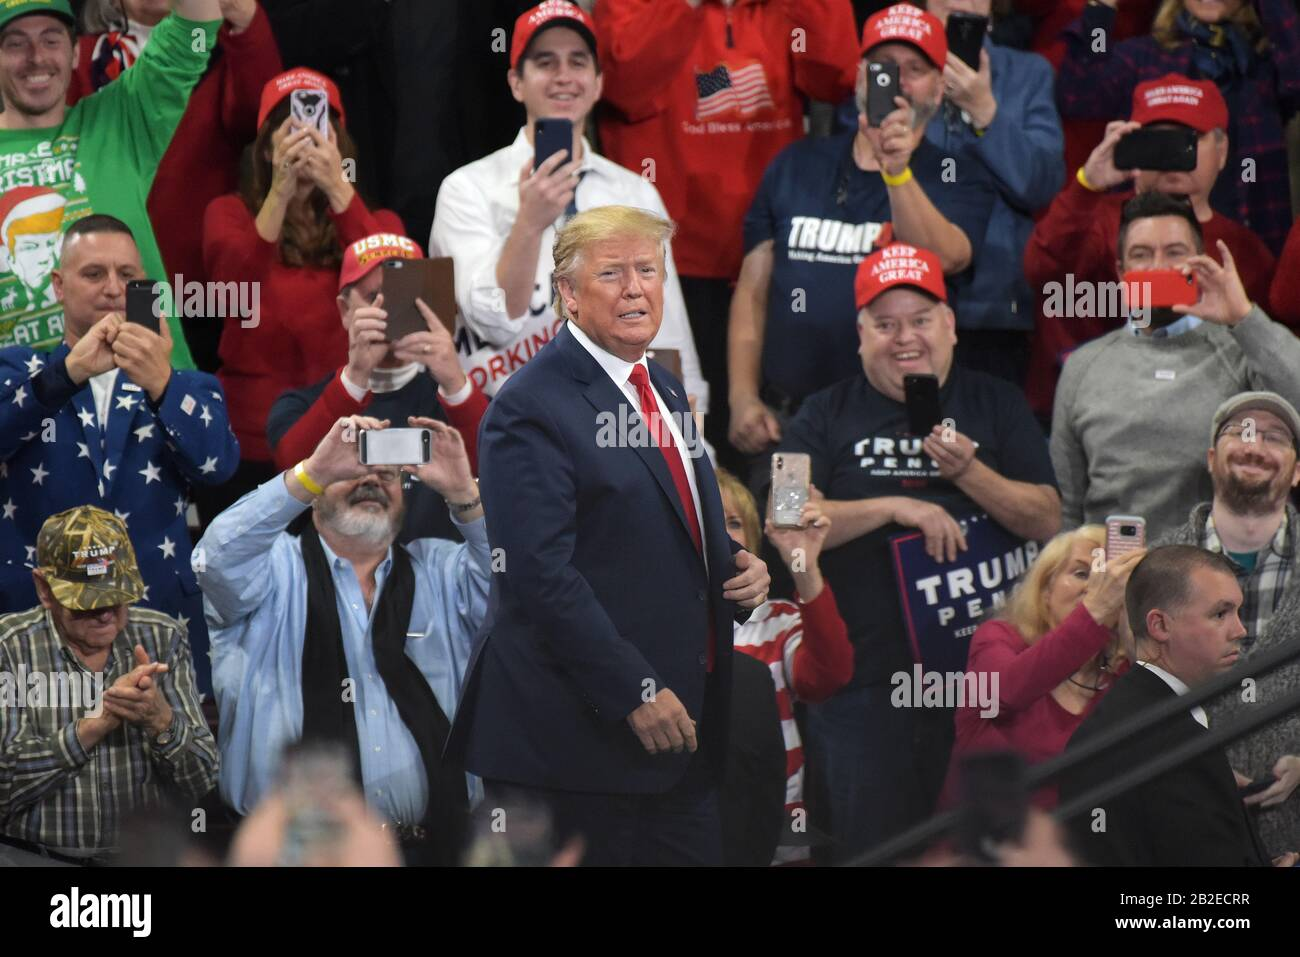 President Donald Trump appears during a rally Dec. 10, 2019, at Giant Center in Hershey, PA. Stock Photo